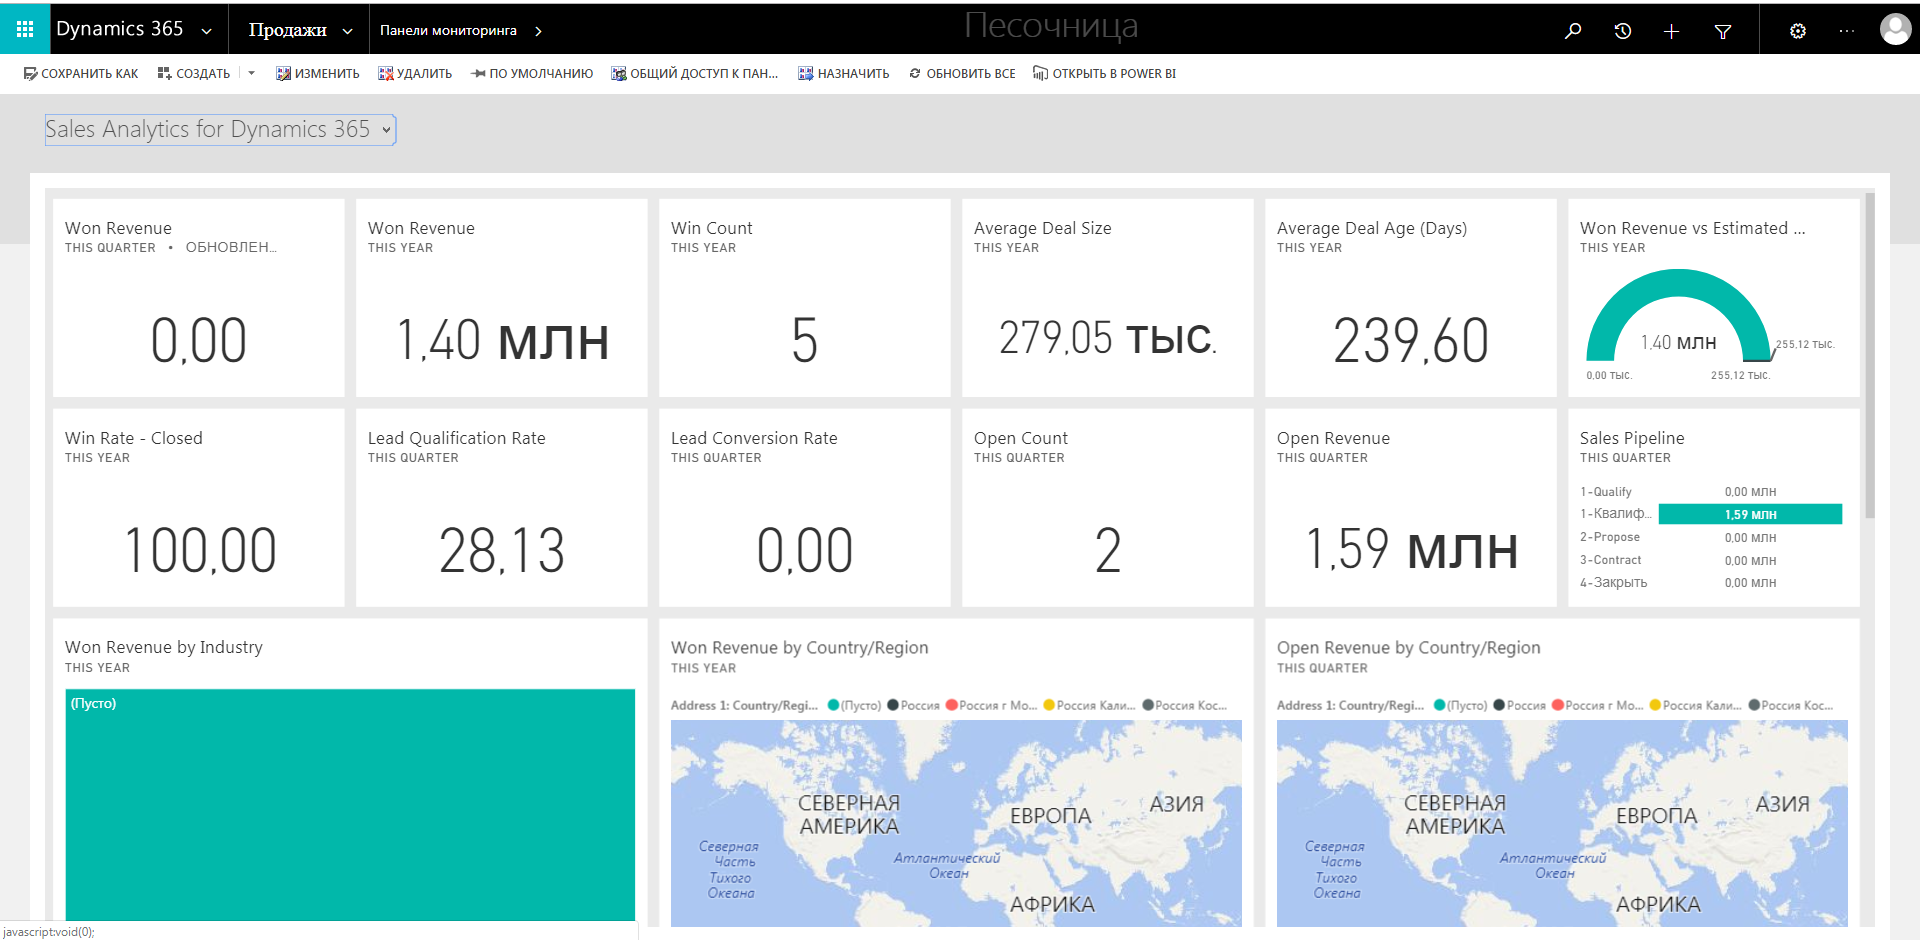 мониторинга Sales Analytics for Dynamics 365